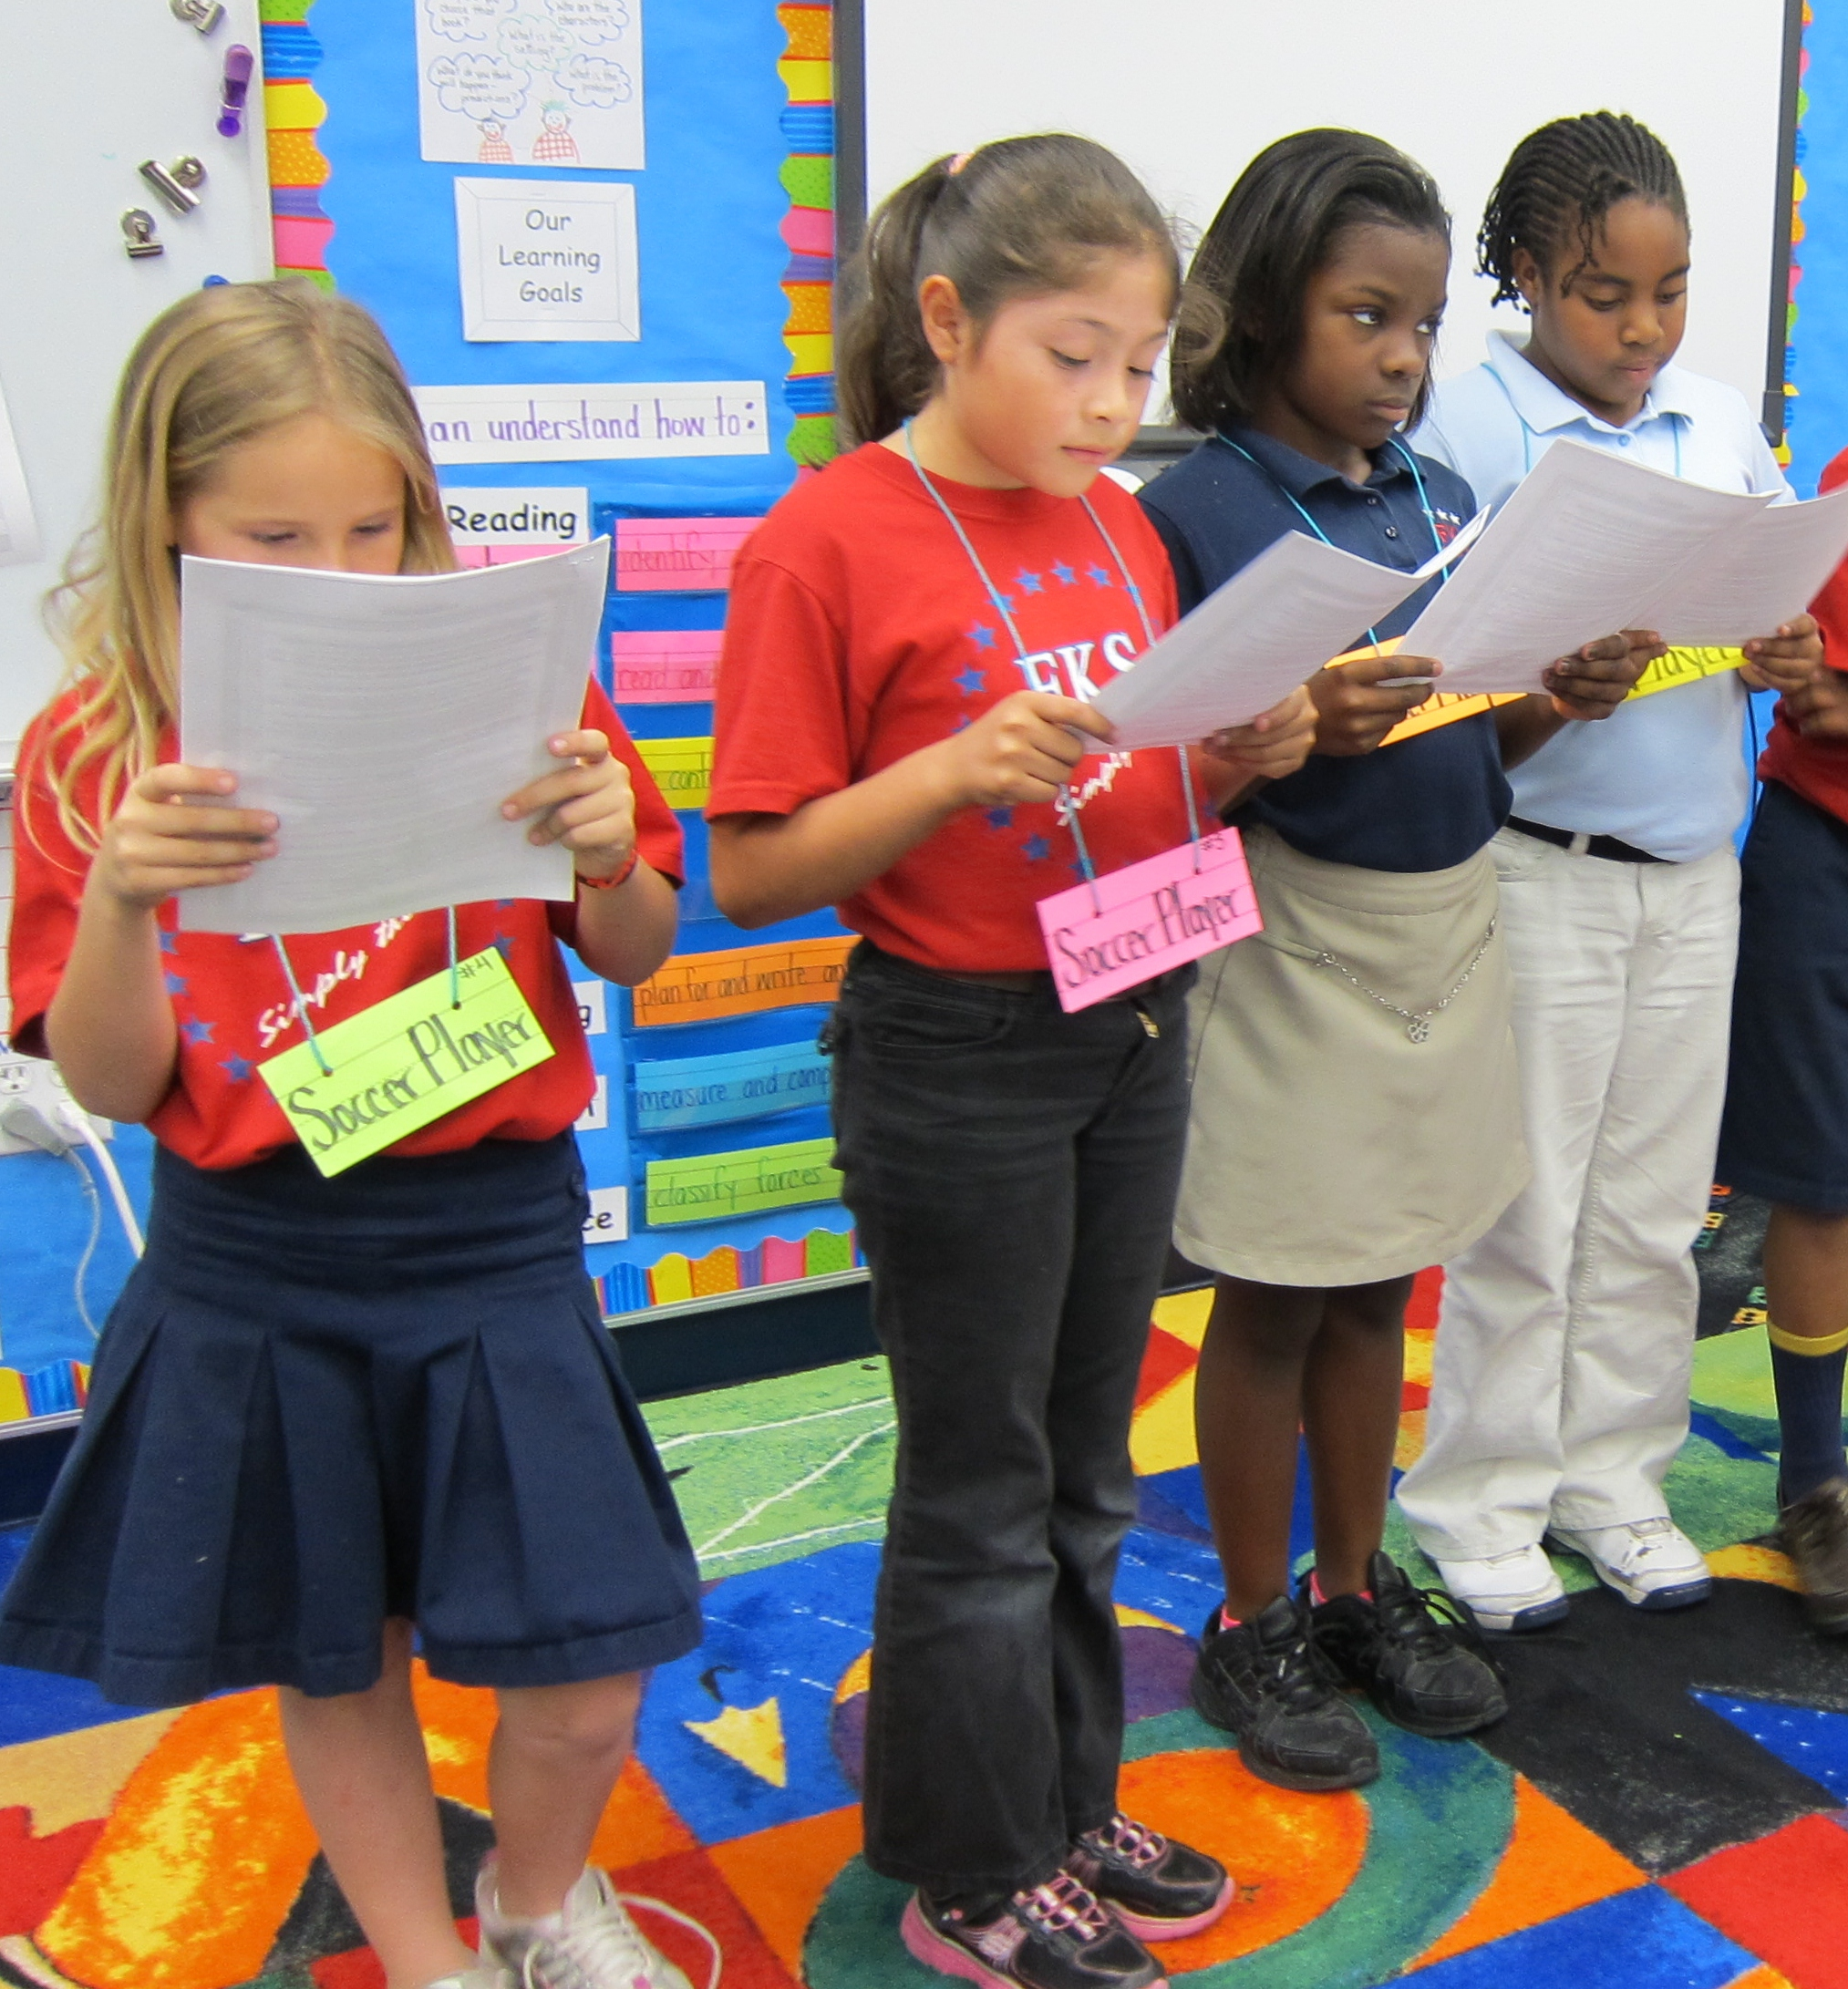 Second graders enjoy the excitement of Readers Theatre